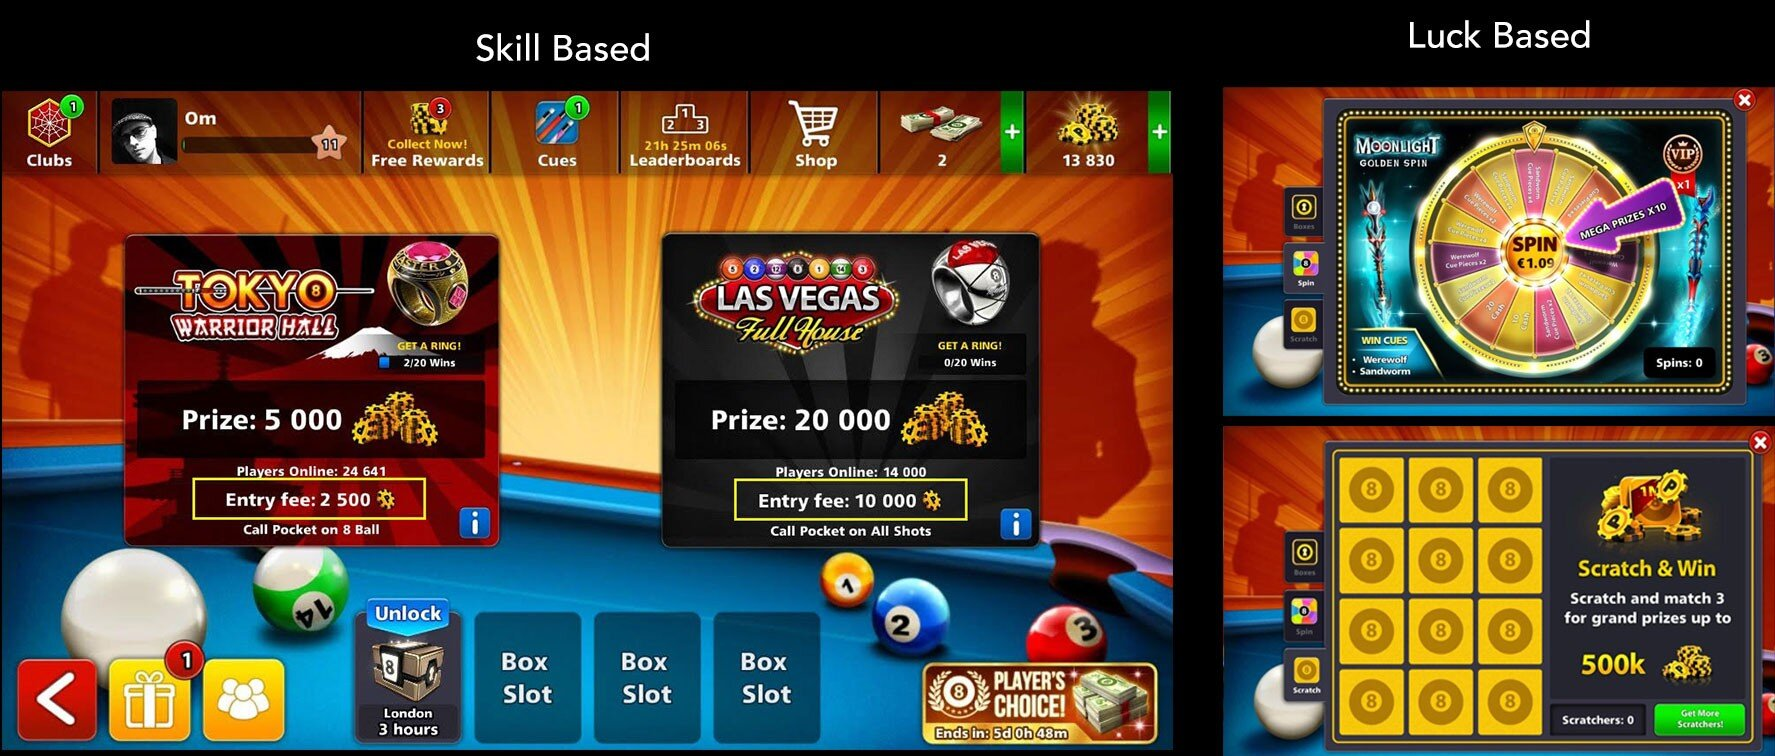 8 ball pool betting cards